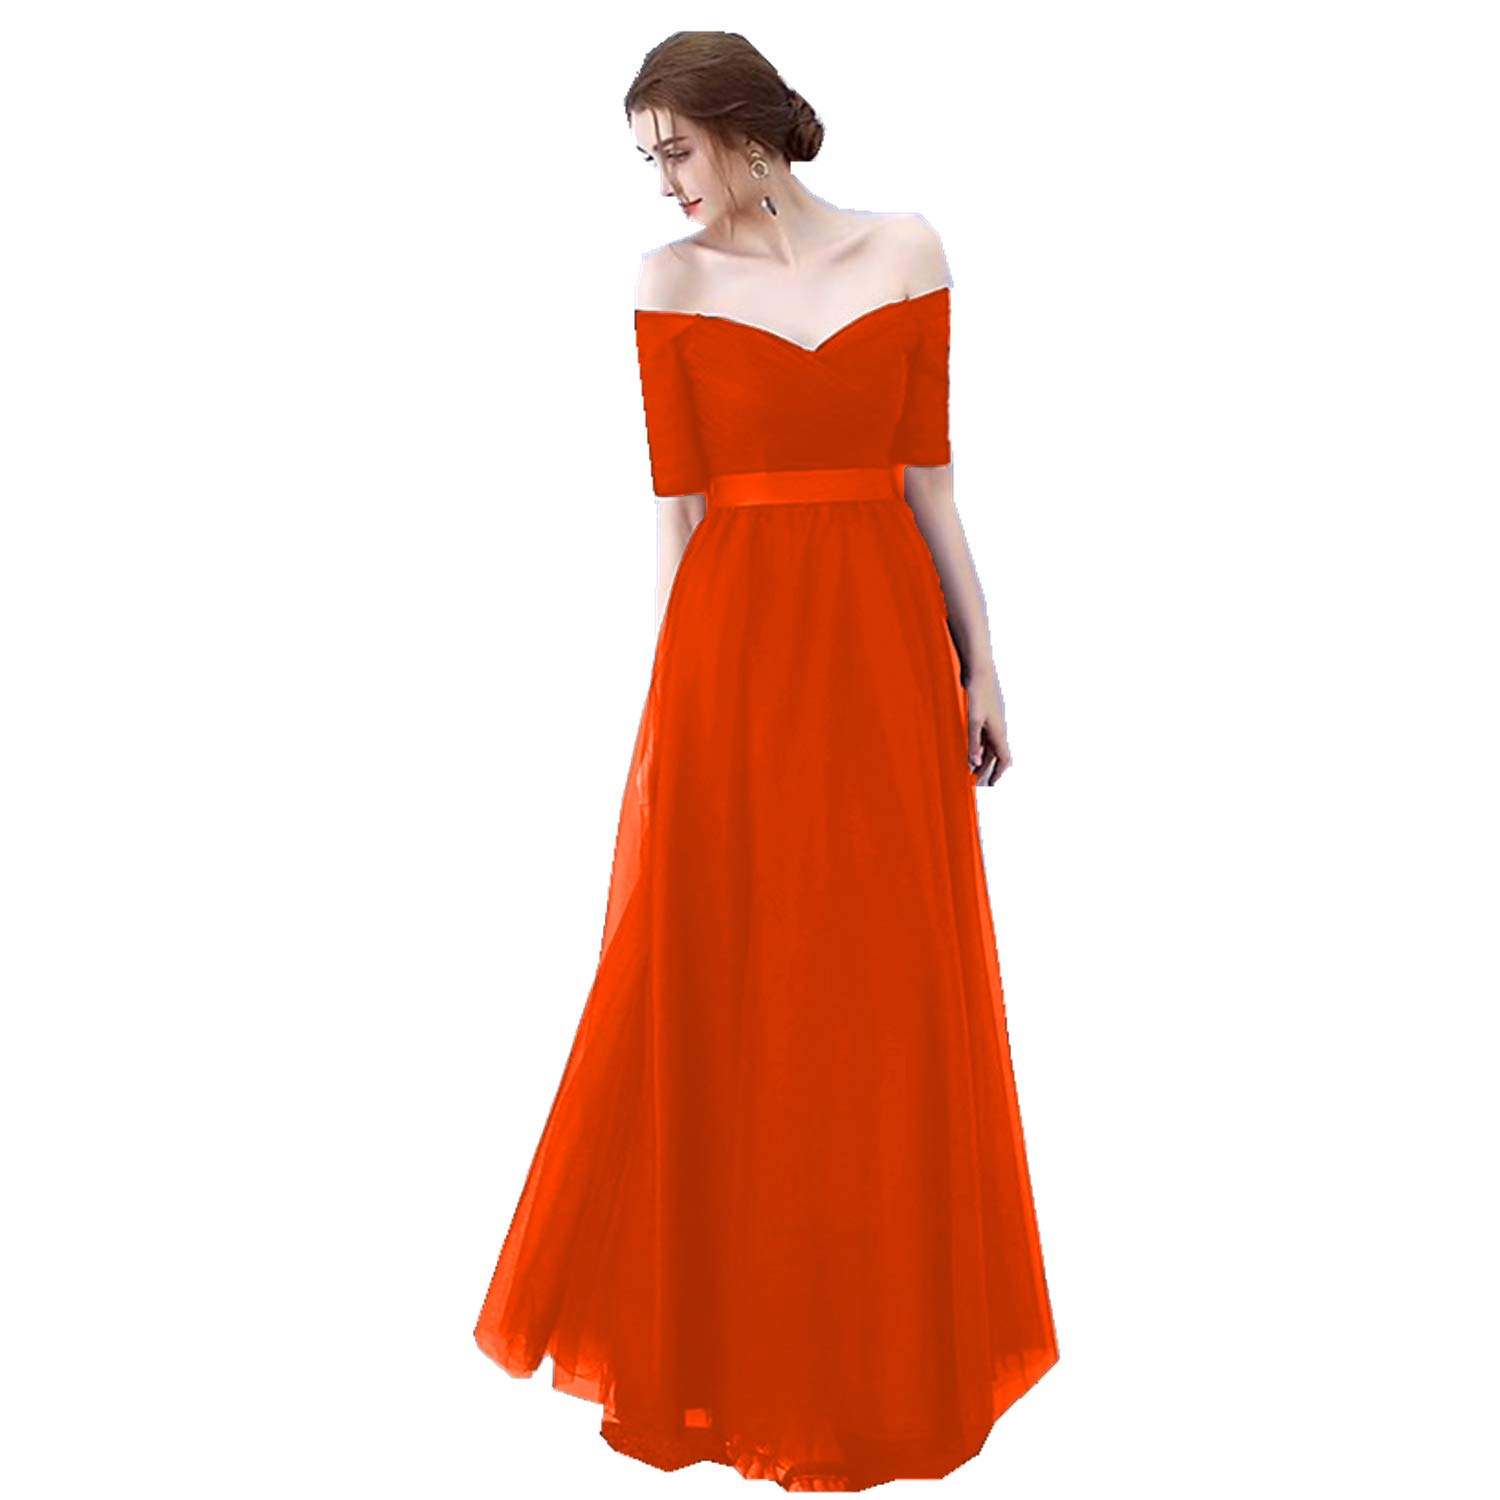 Red Ruiyuhong Women's VNeck Off The Shoulder Bridesmaid Dresses Long Tulle Wedding Party Gown